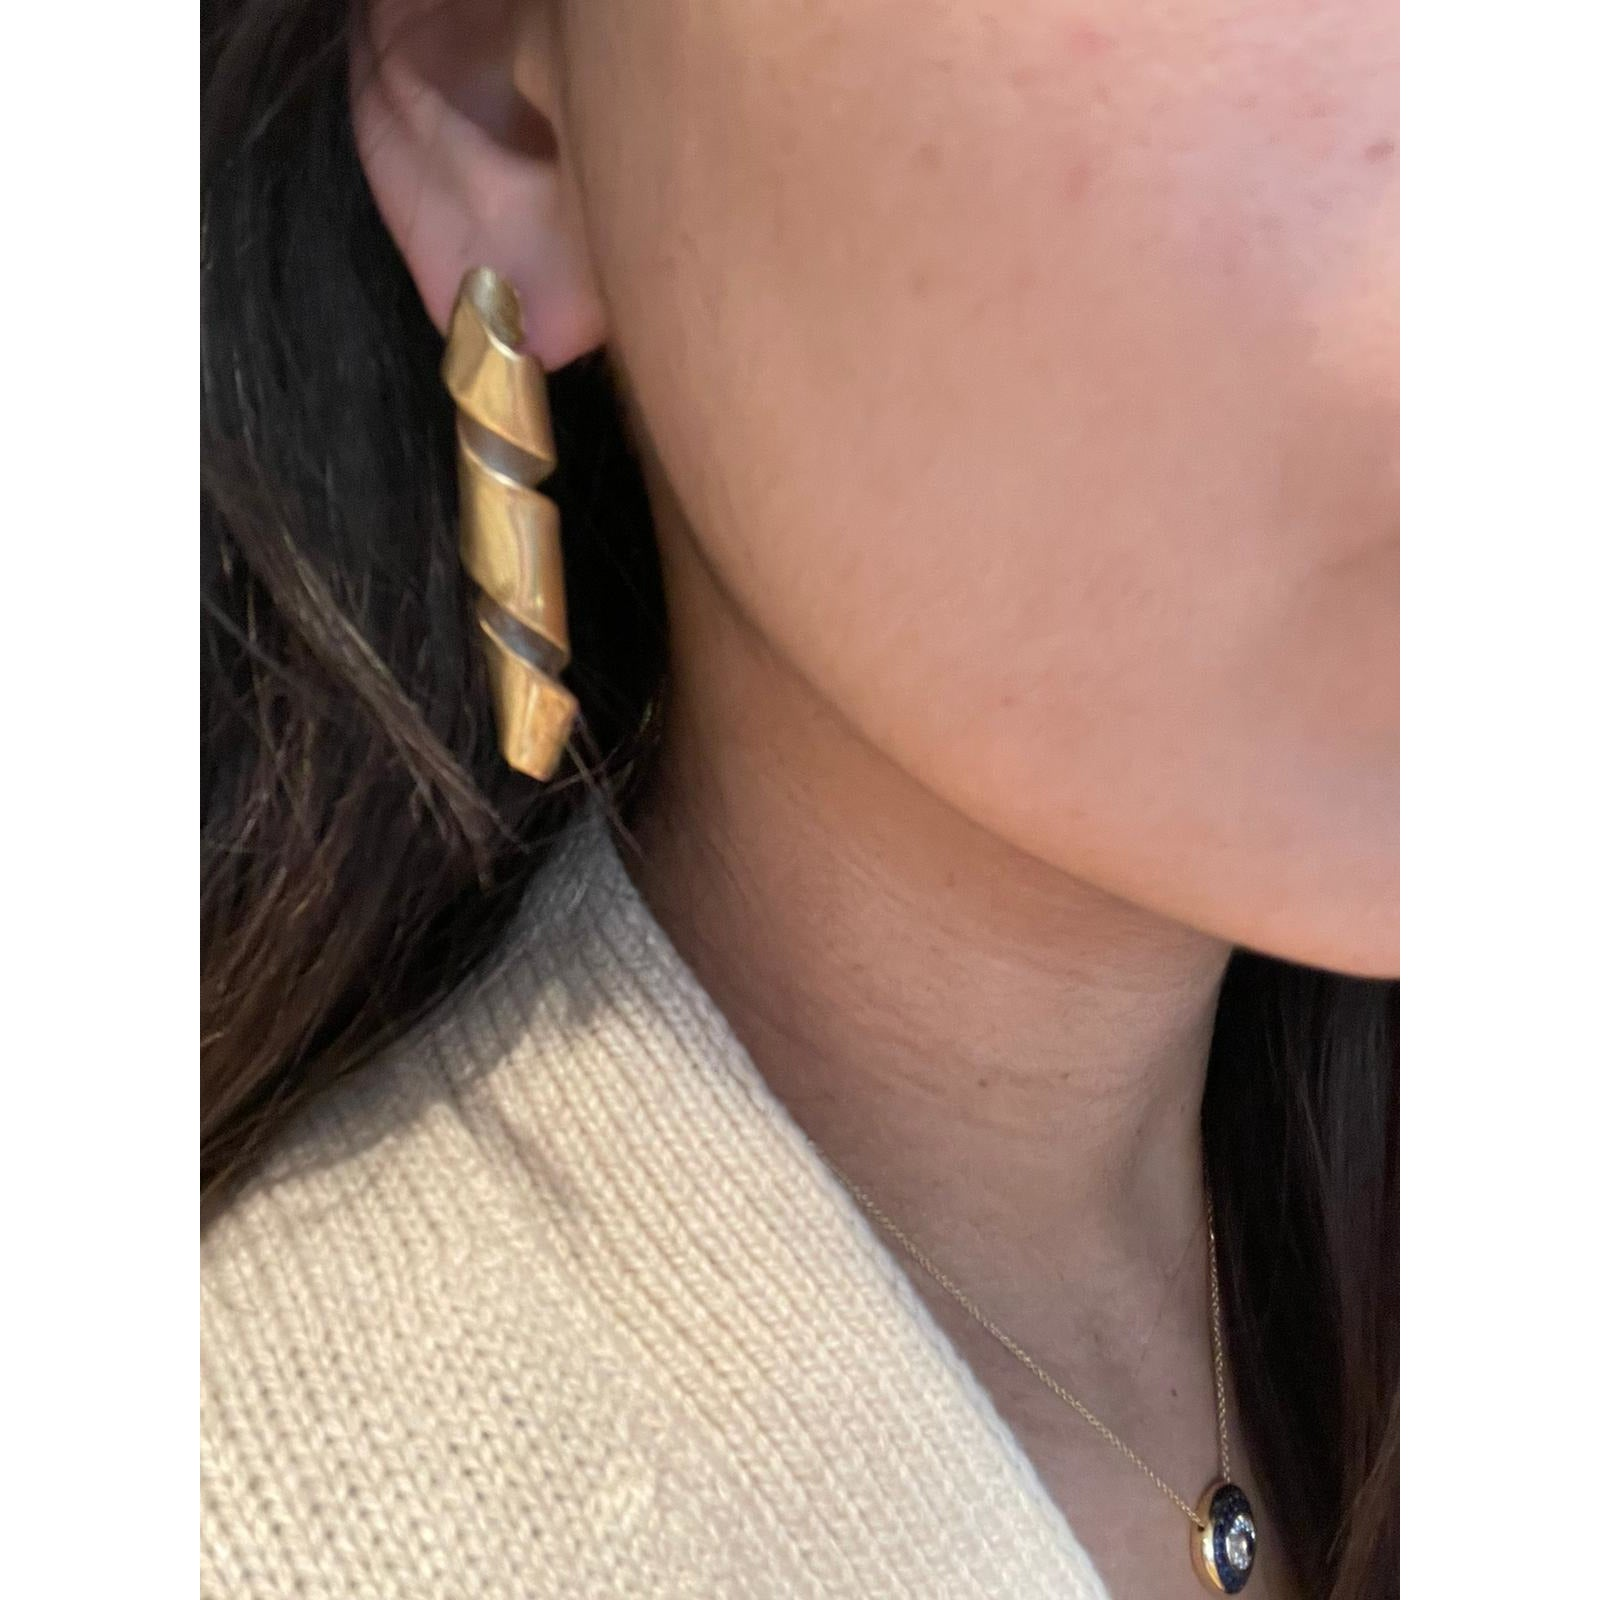 Streamer Earrings 24K gold plating over 925 Recycled Silver, Made to order, 10 days lead time - natoorio